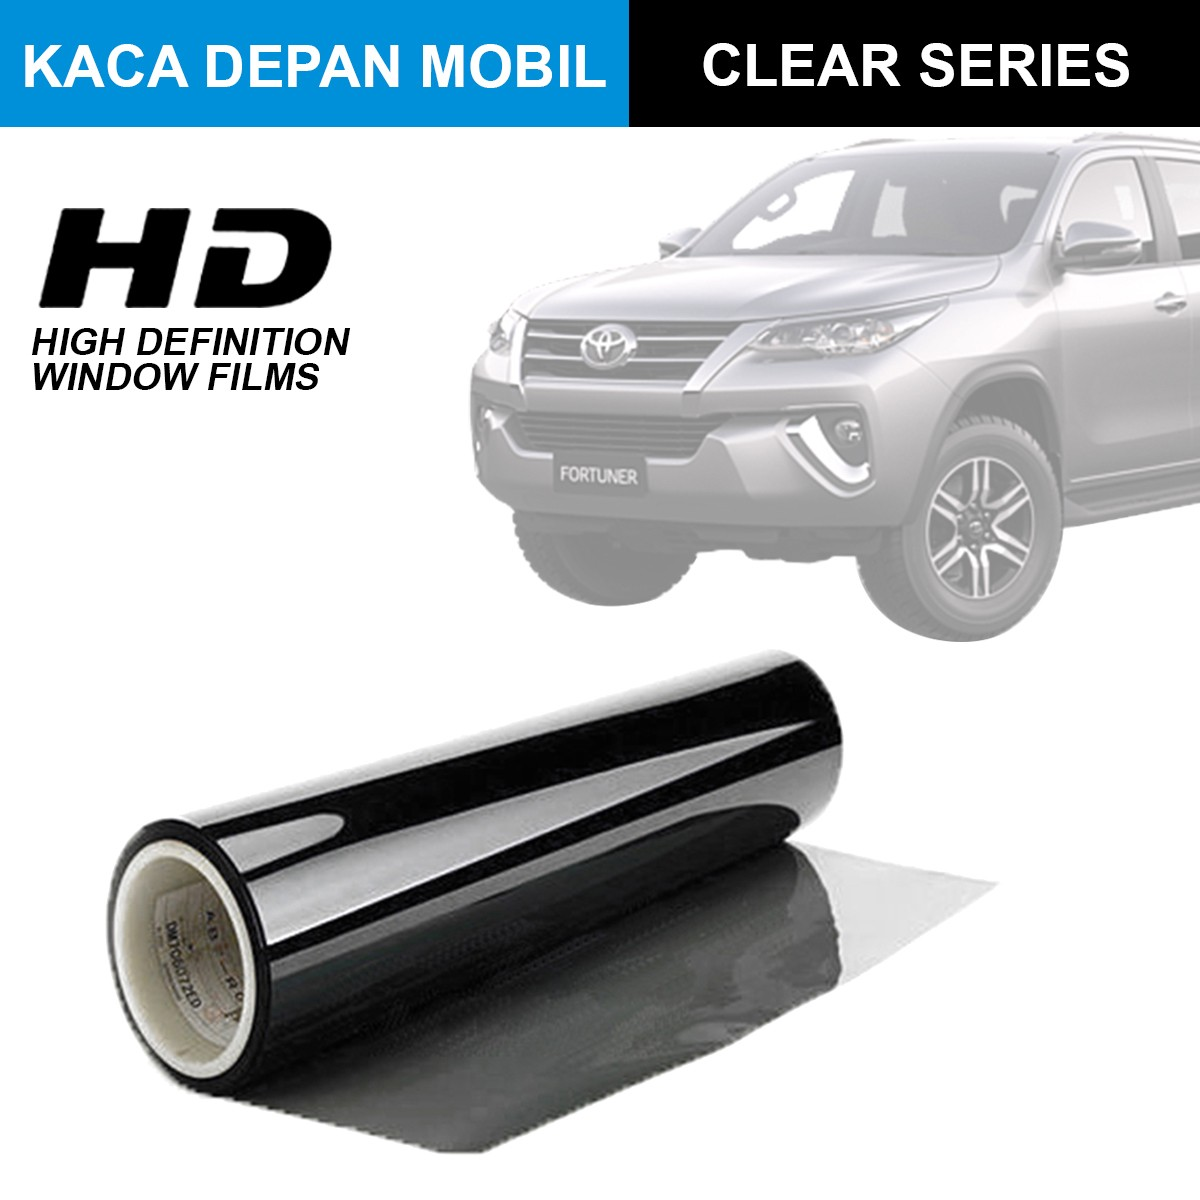 KACA FILM HIGH DEFINITION CLEAR SERIES - (LARGE CAR) KACA DEPAN